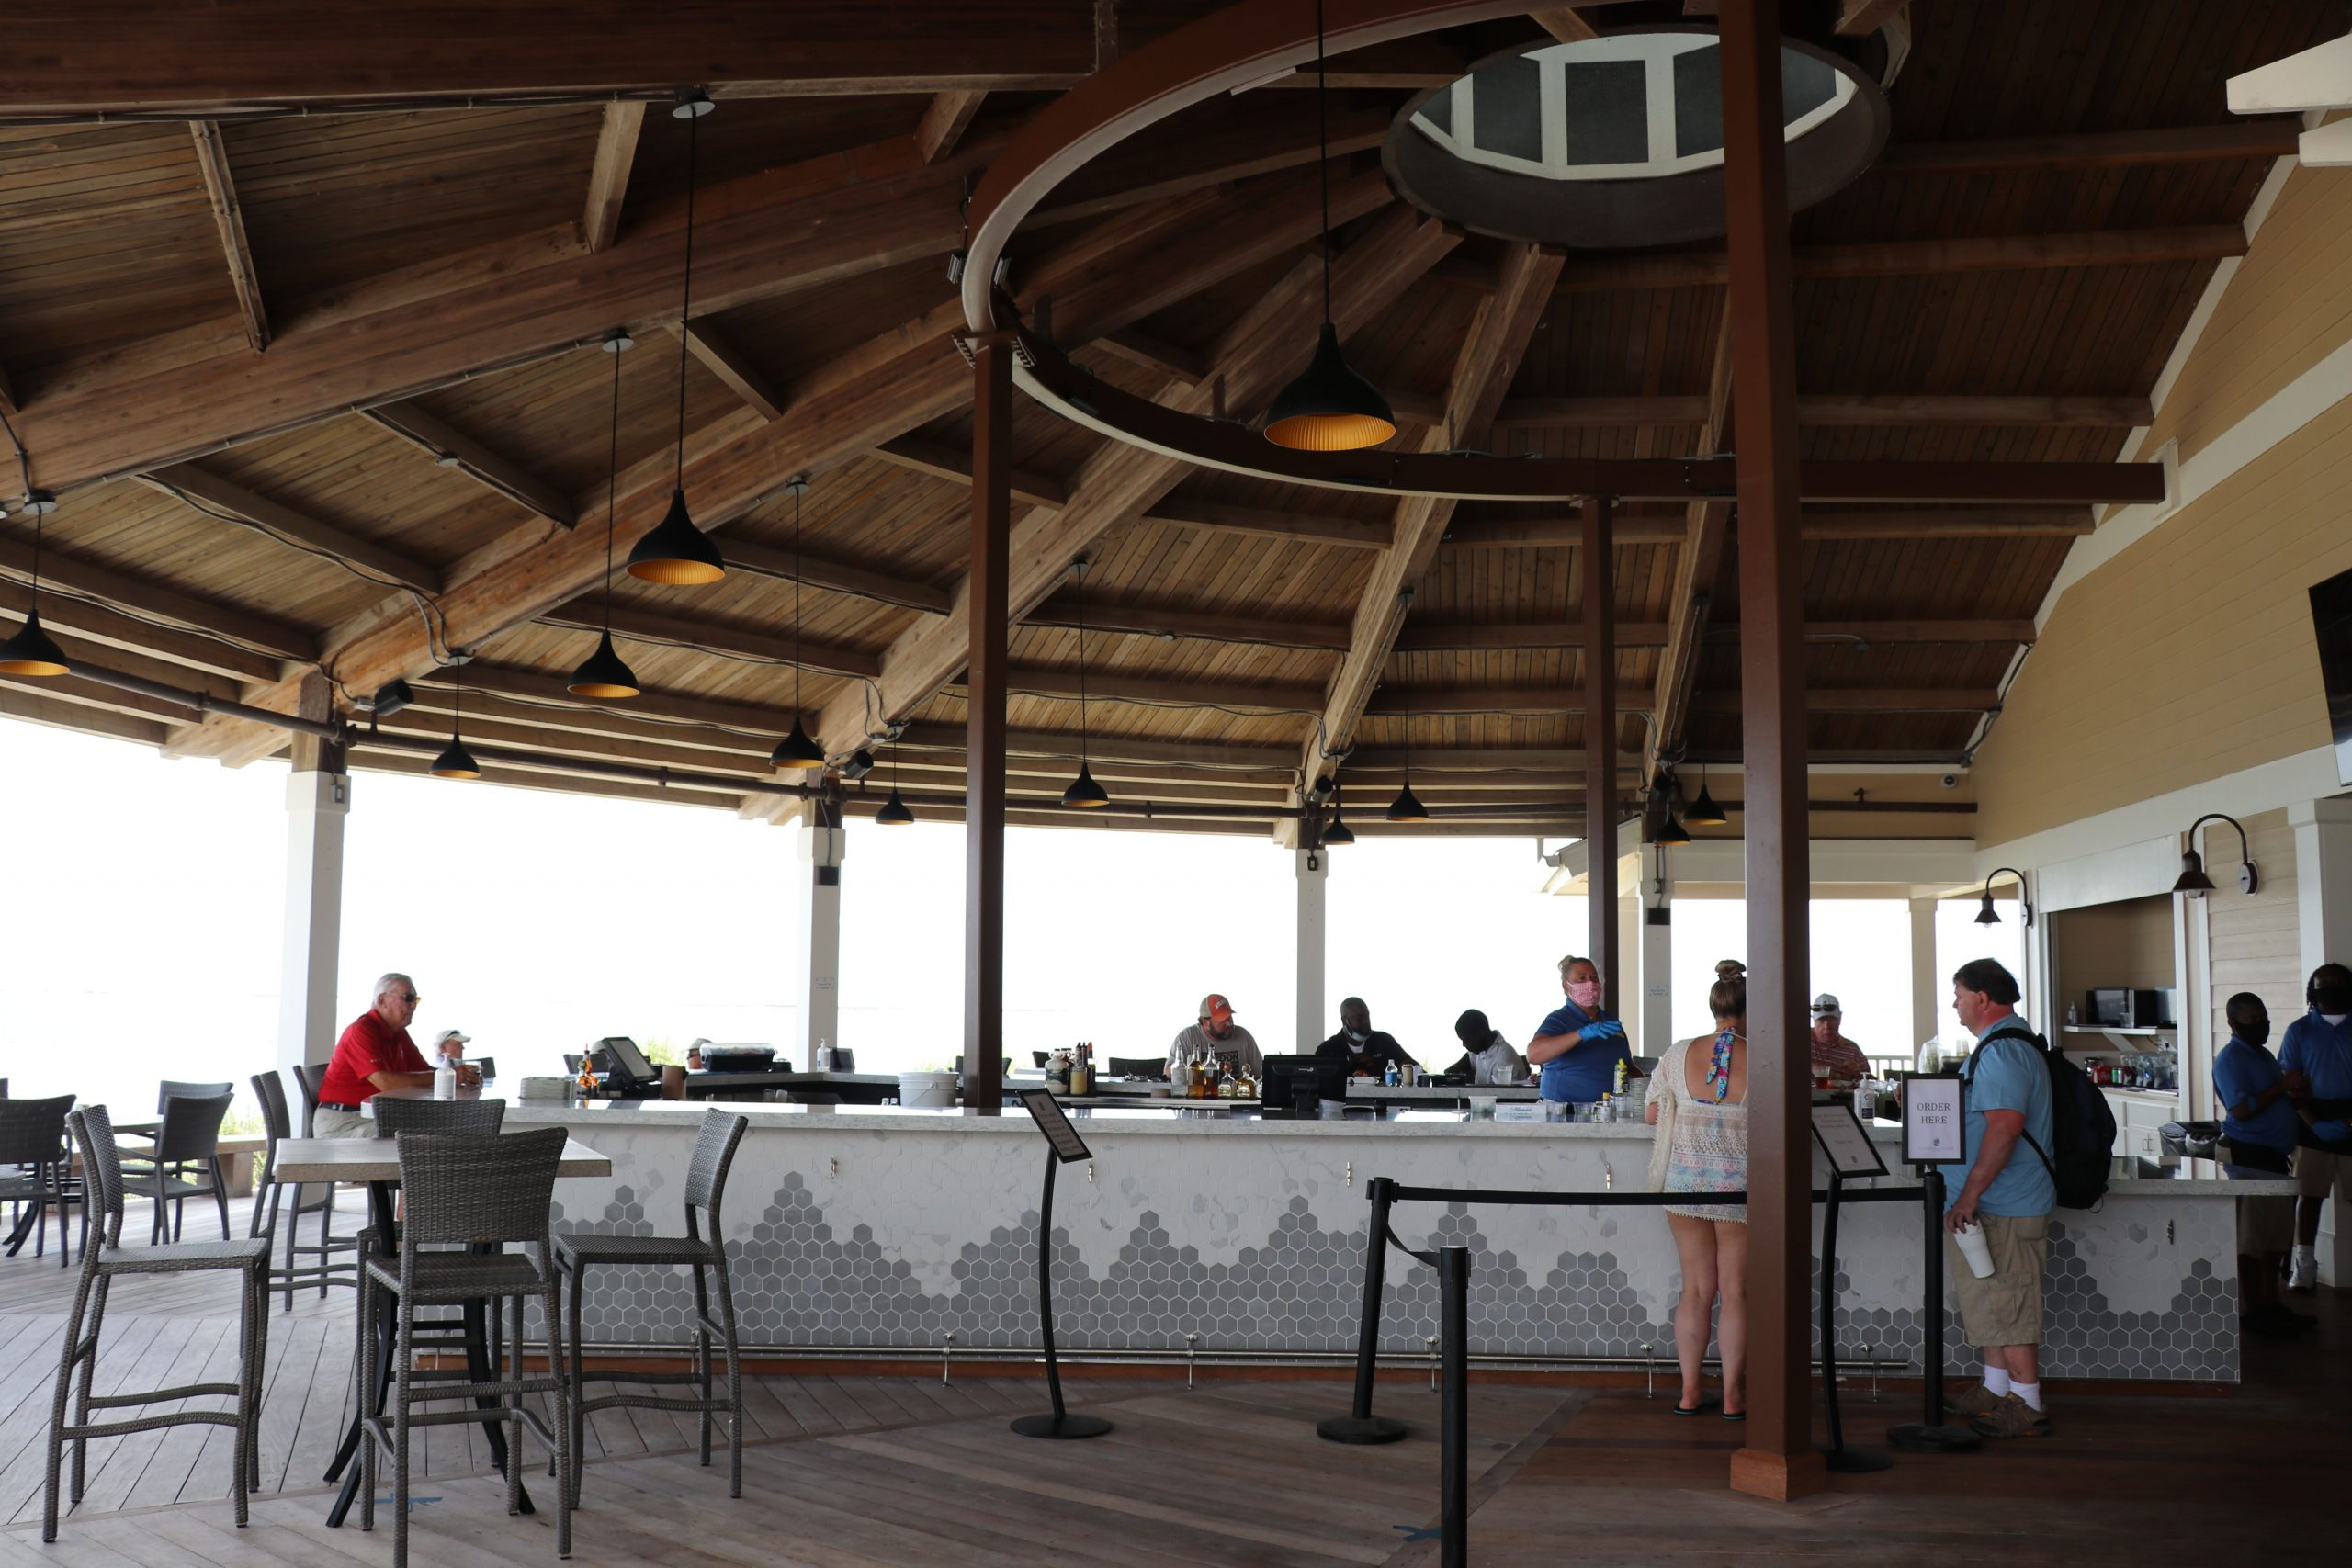 Seabrook Island Club outdoor area bar for food and beverage